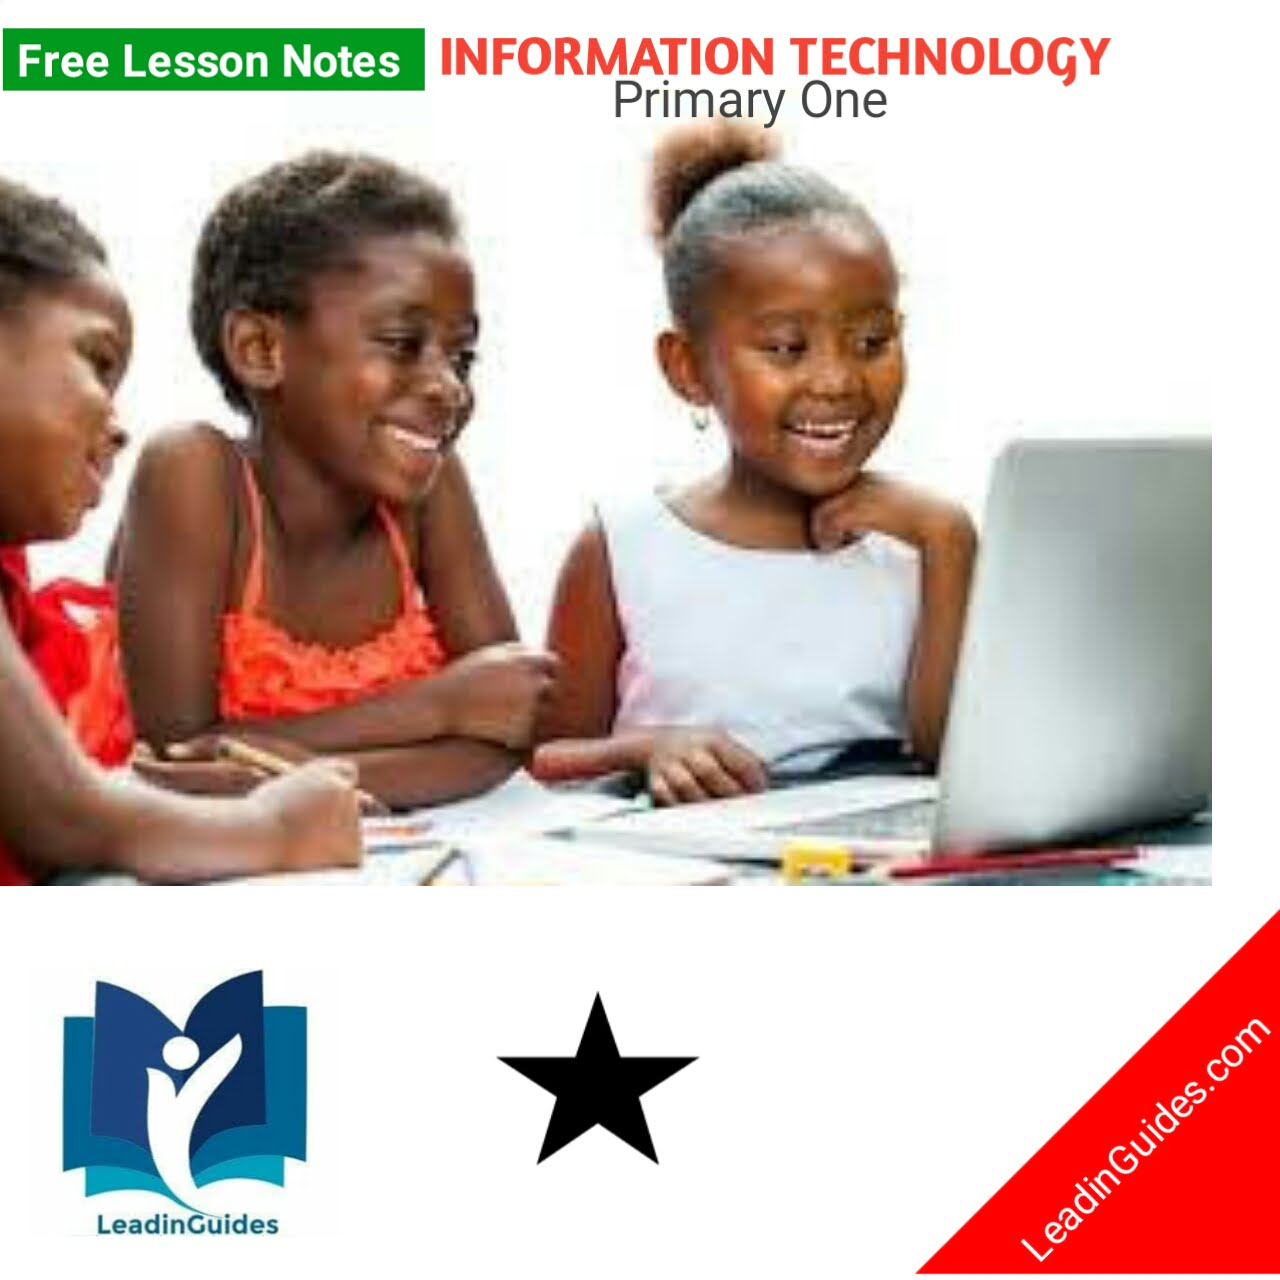 First Term Information Technology Lesson Note Primary One Week 1-2